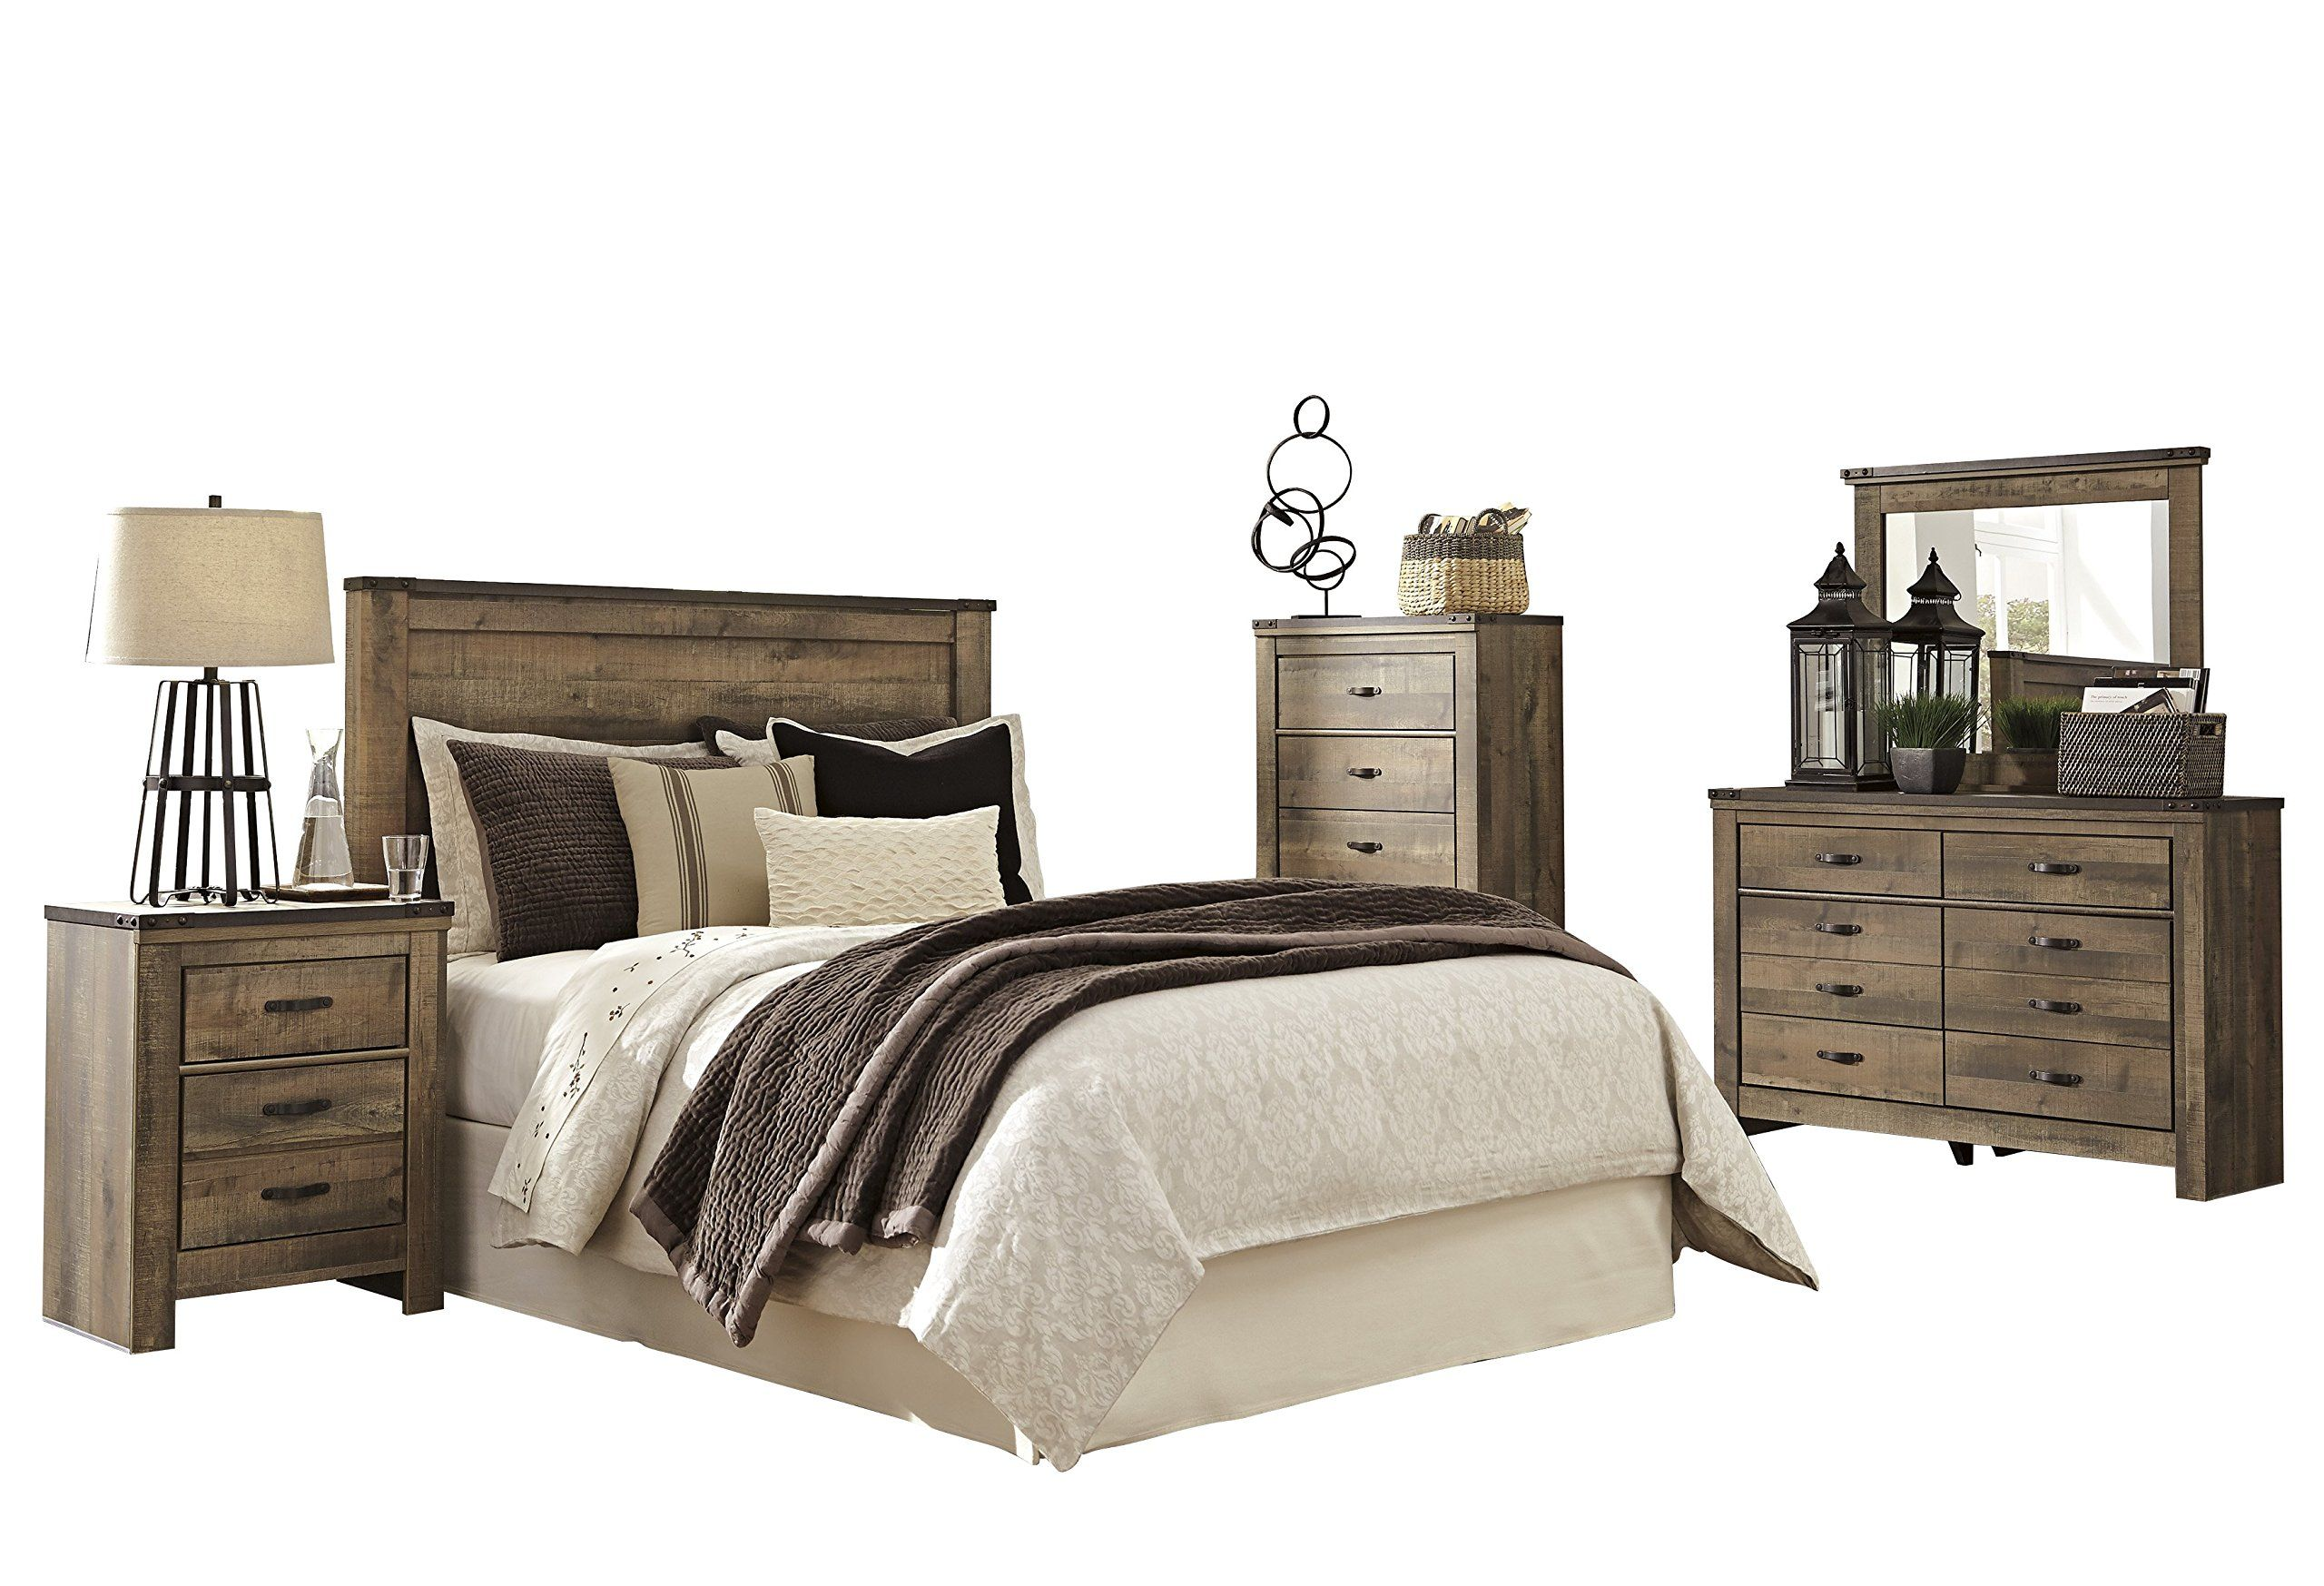 Ashley Trinell 5pc Bedroom Set Queen Panel Headboard One Nightstand Dresser Mirror Chest In Ashley Furniture Bedroom Bedroom Set Ashley Bedroom Furniture Sets